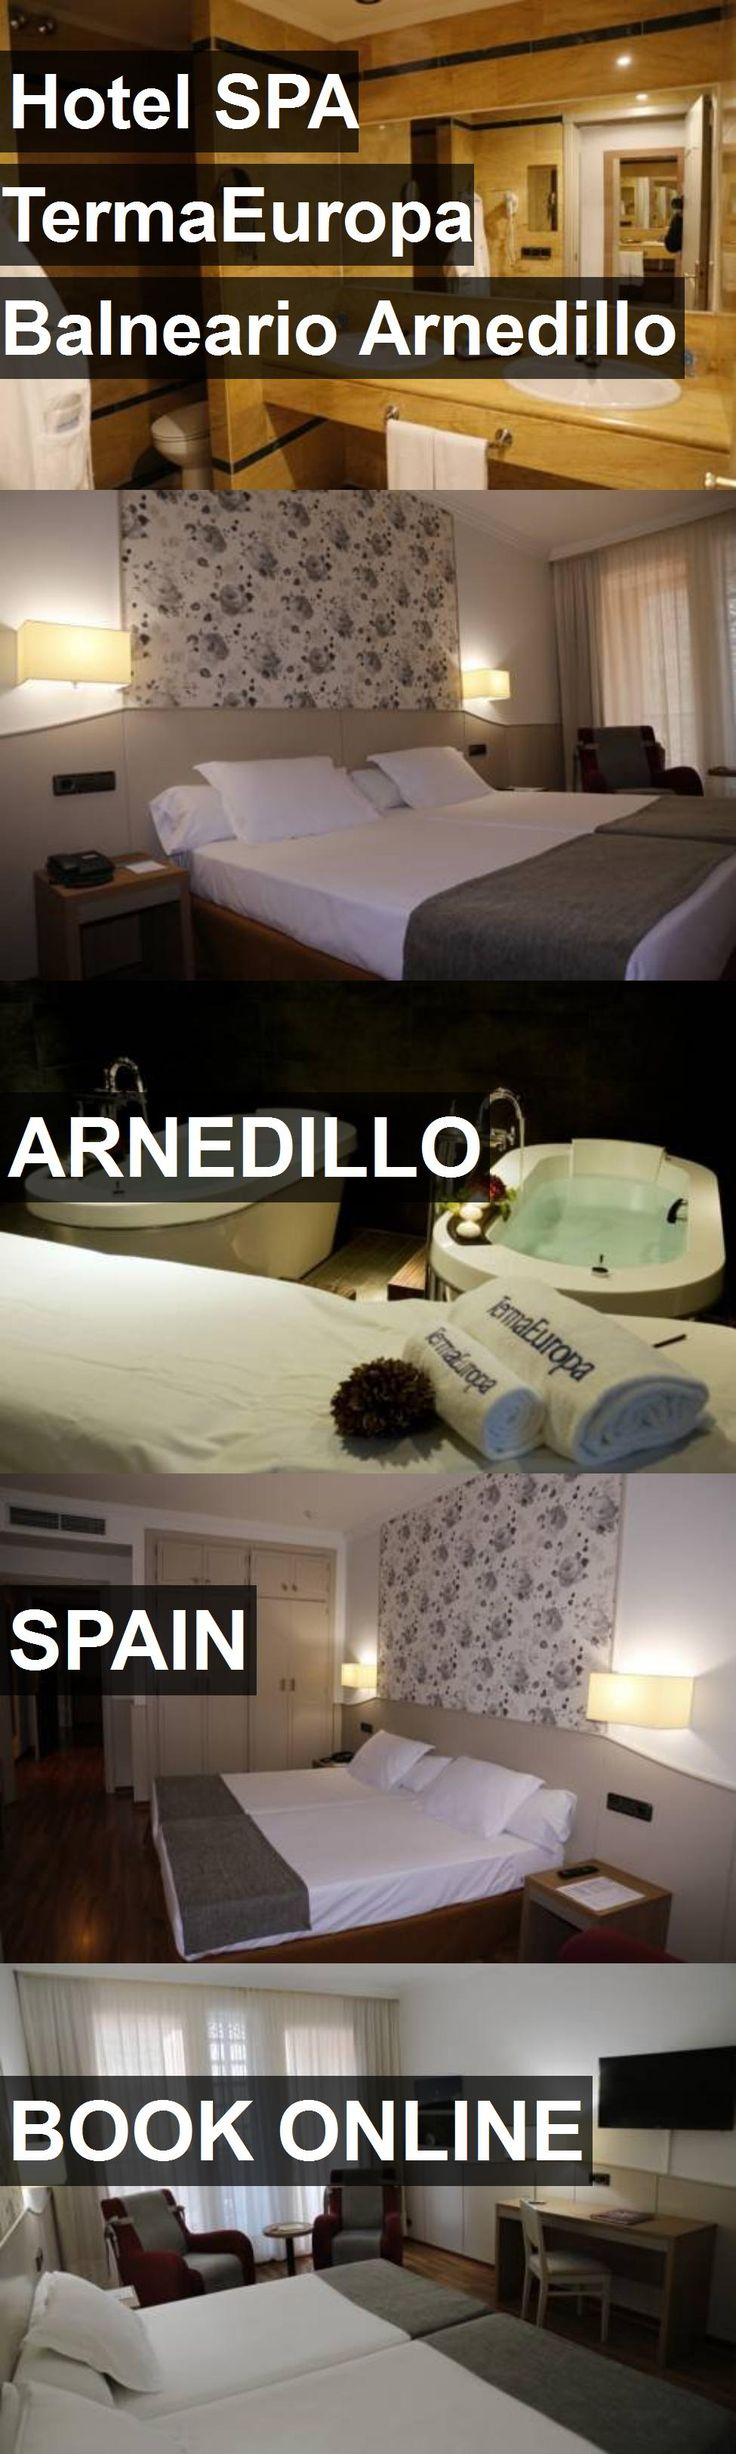 Hotel SPA TermaEuropa Balneario Arnedillo in Arnedillo, Spain. For more information, photos, reviews and best prices please follow the link. #Spain #Arnedillo #travel #vacation #hotel